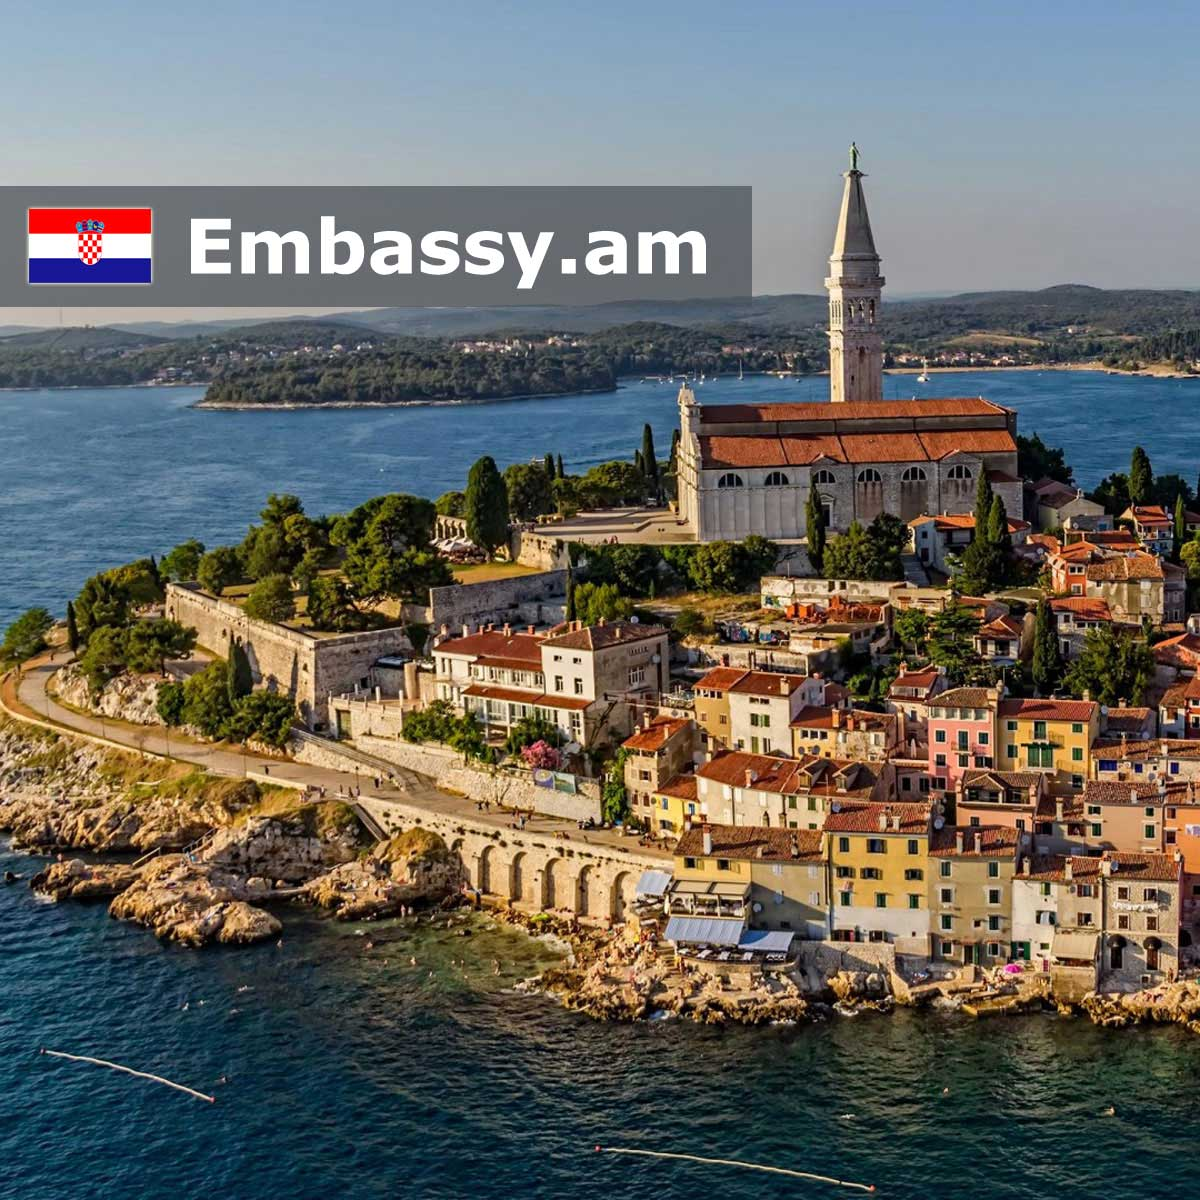 Ровинь - Отели в Хорватии - Embassy.am